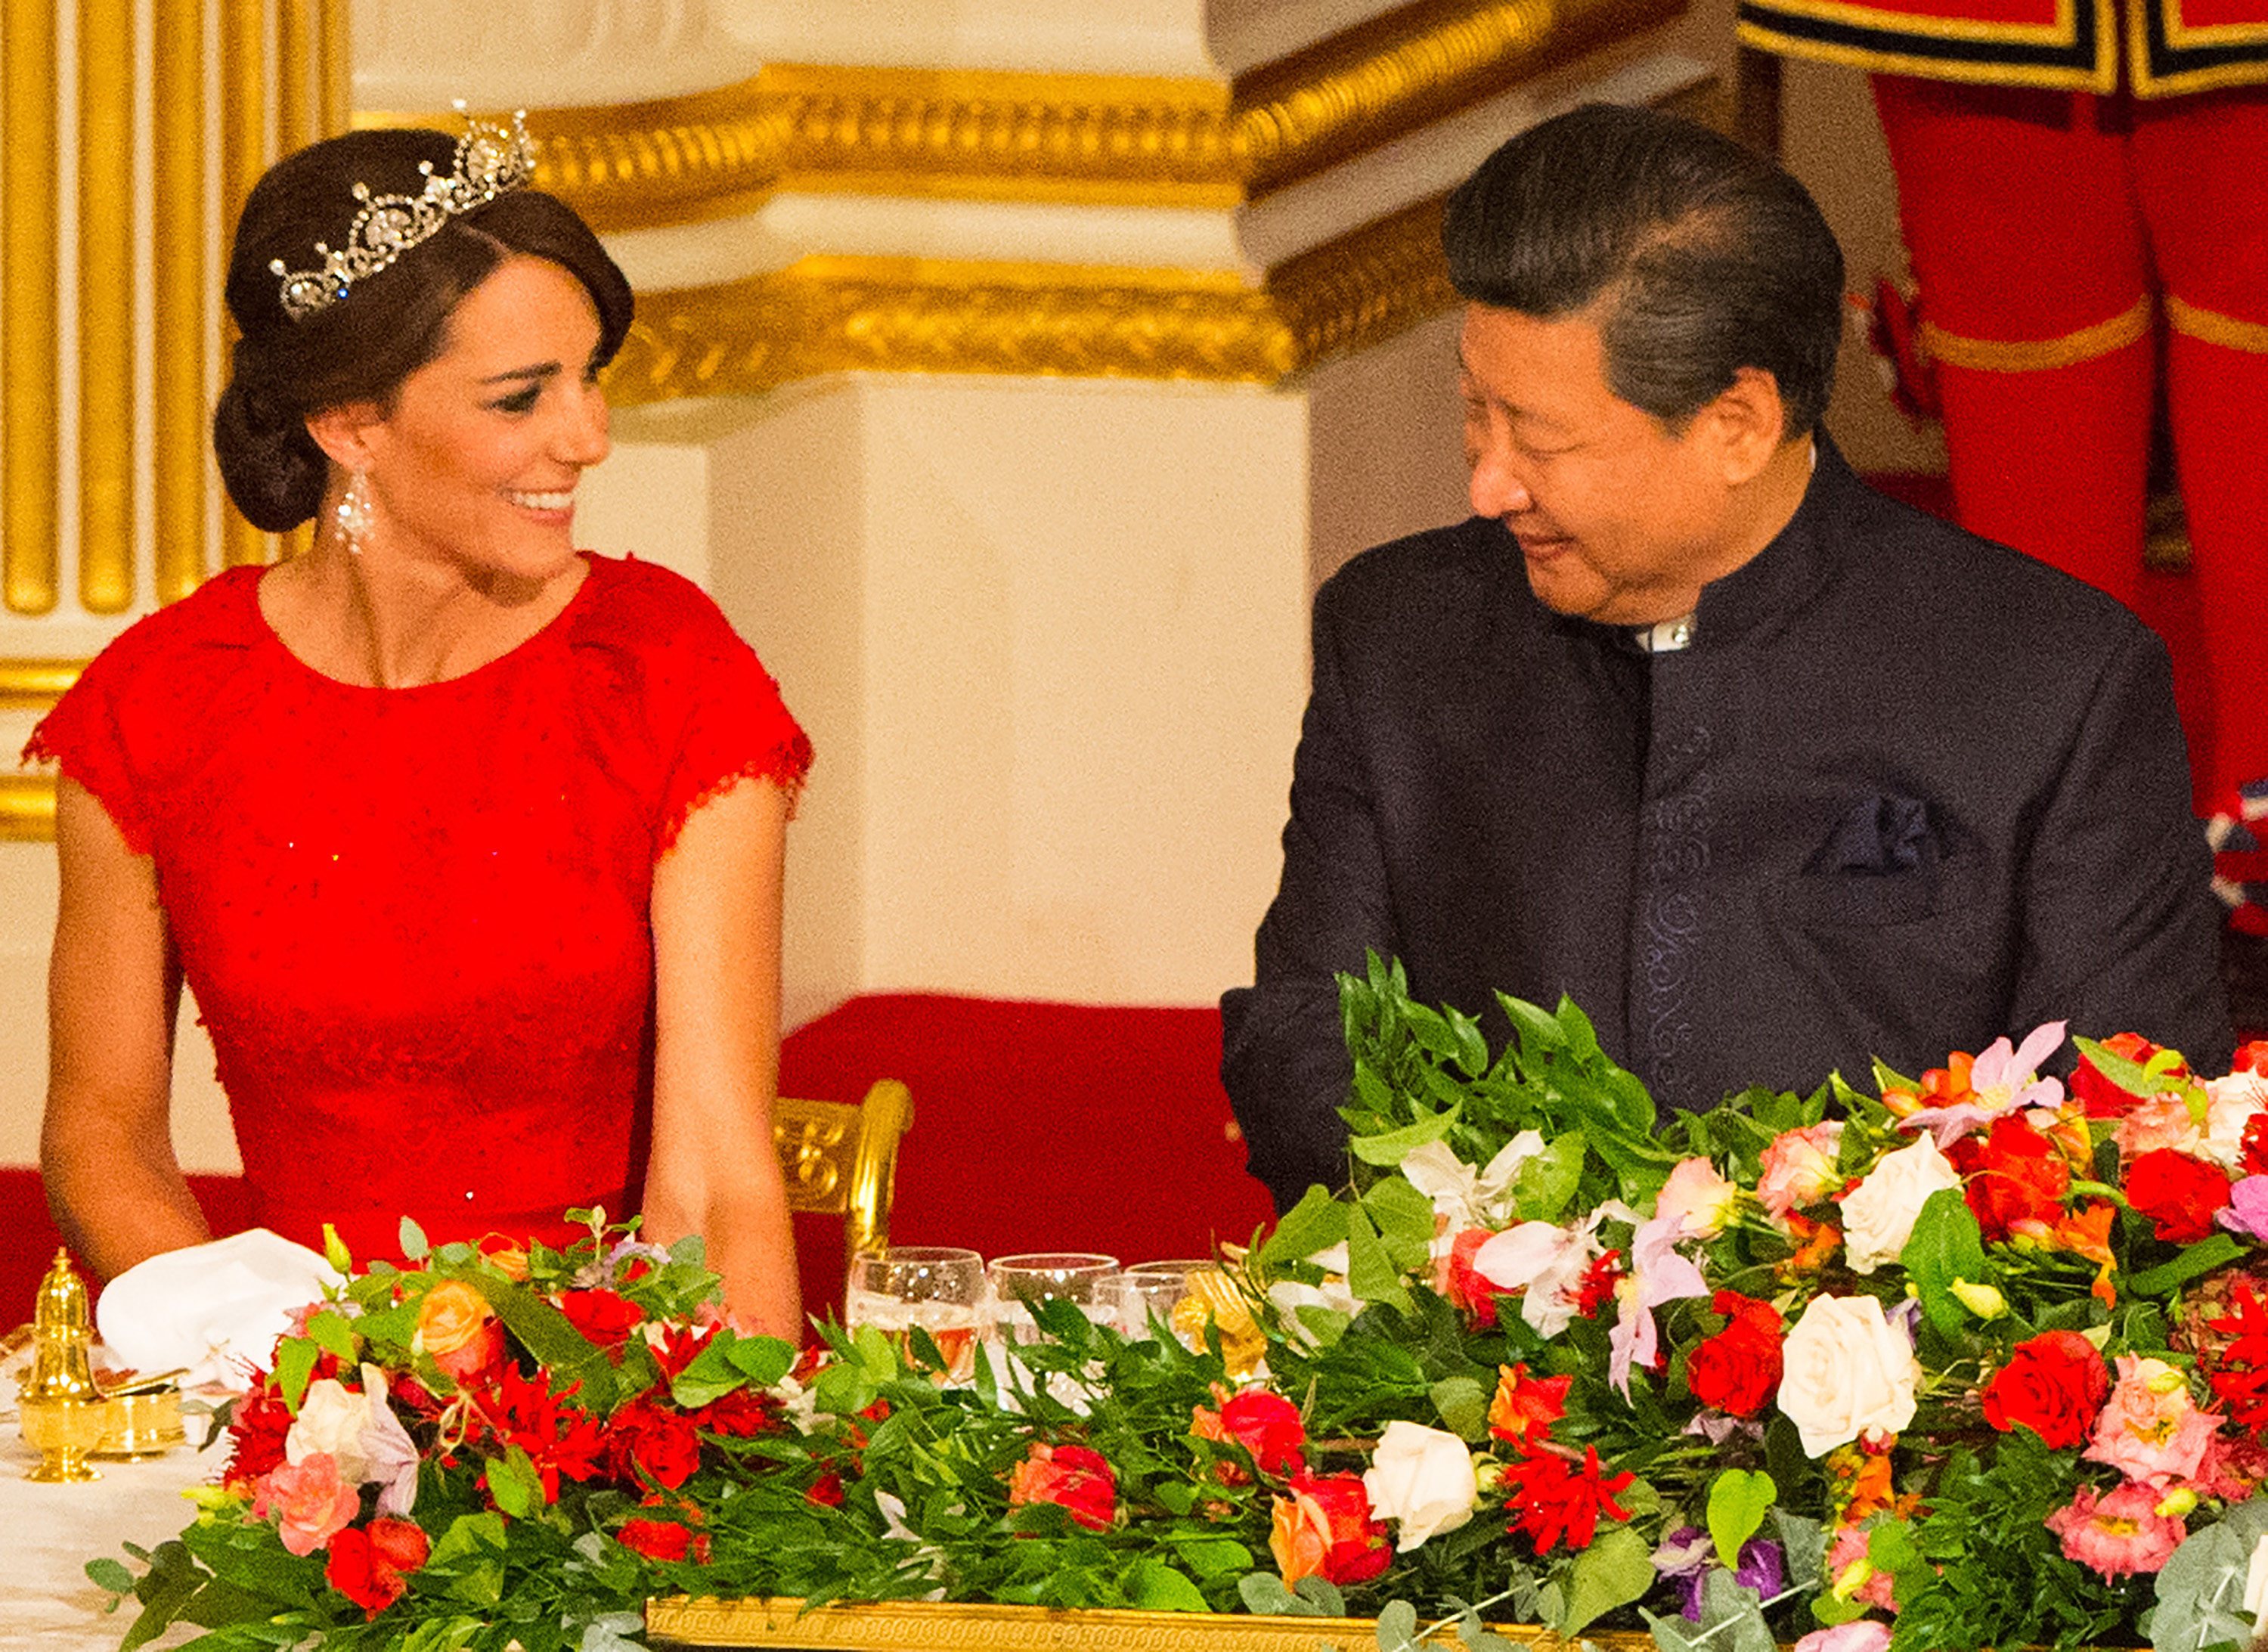 The State Banquet for the Chinese President, Xi Jinping, held on the first day of his State Visit to the UK, at Buckingham Palace, London, UK, on the 20th October 2015.  Picture by Dominic Lipinski/WPA-Pool <P> Pictured: Duchess of Cambridge, Catherine, Kate Middleton, Xi Jinping <B>Ref: SPL1156329  201015  </B><BR/> Picture by: Splash News<BR/> </P><P> <B>Splash News and Pictures</B><BR/> Los Angeles:310-821-2666<BR/> New York:212-619-2666<BR/> London:870-934-2666<BR/> <span id=